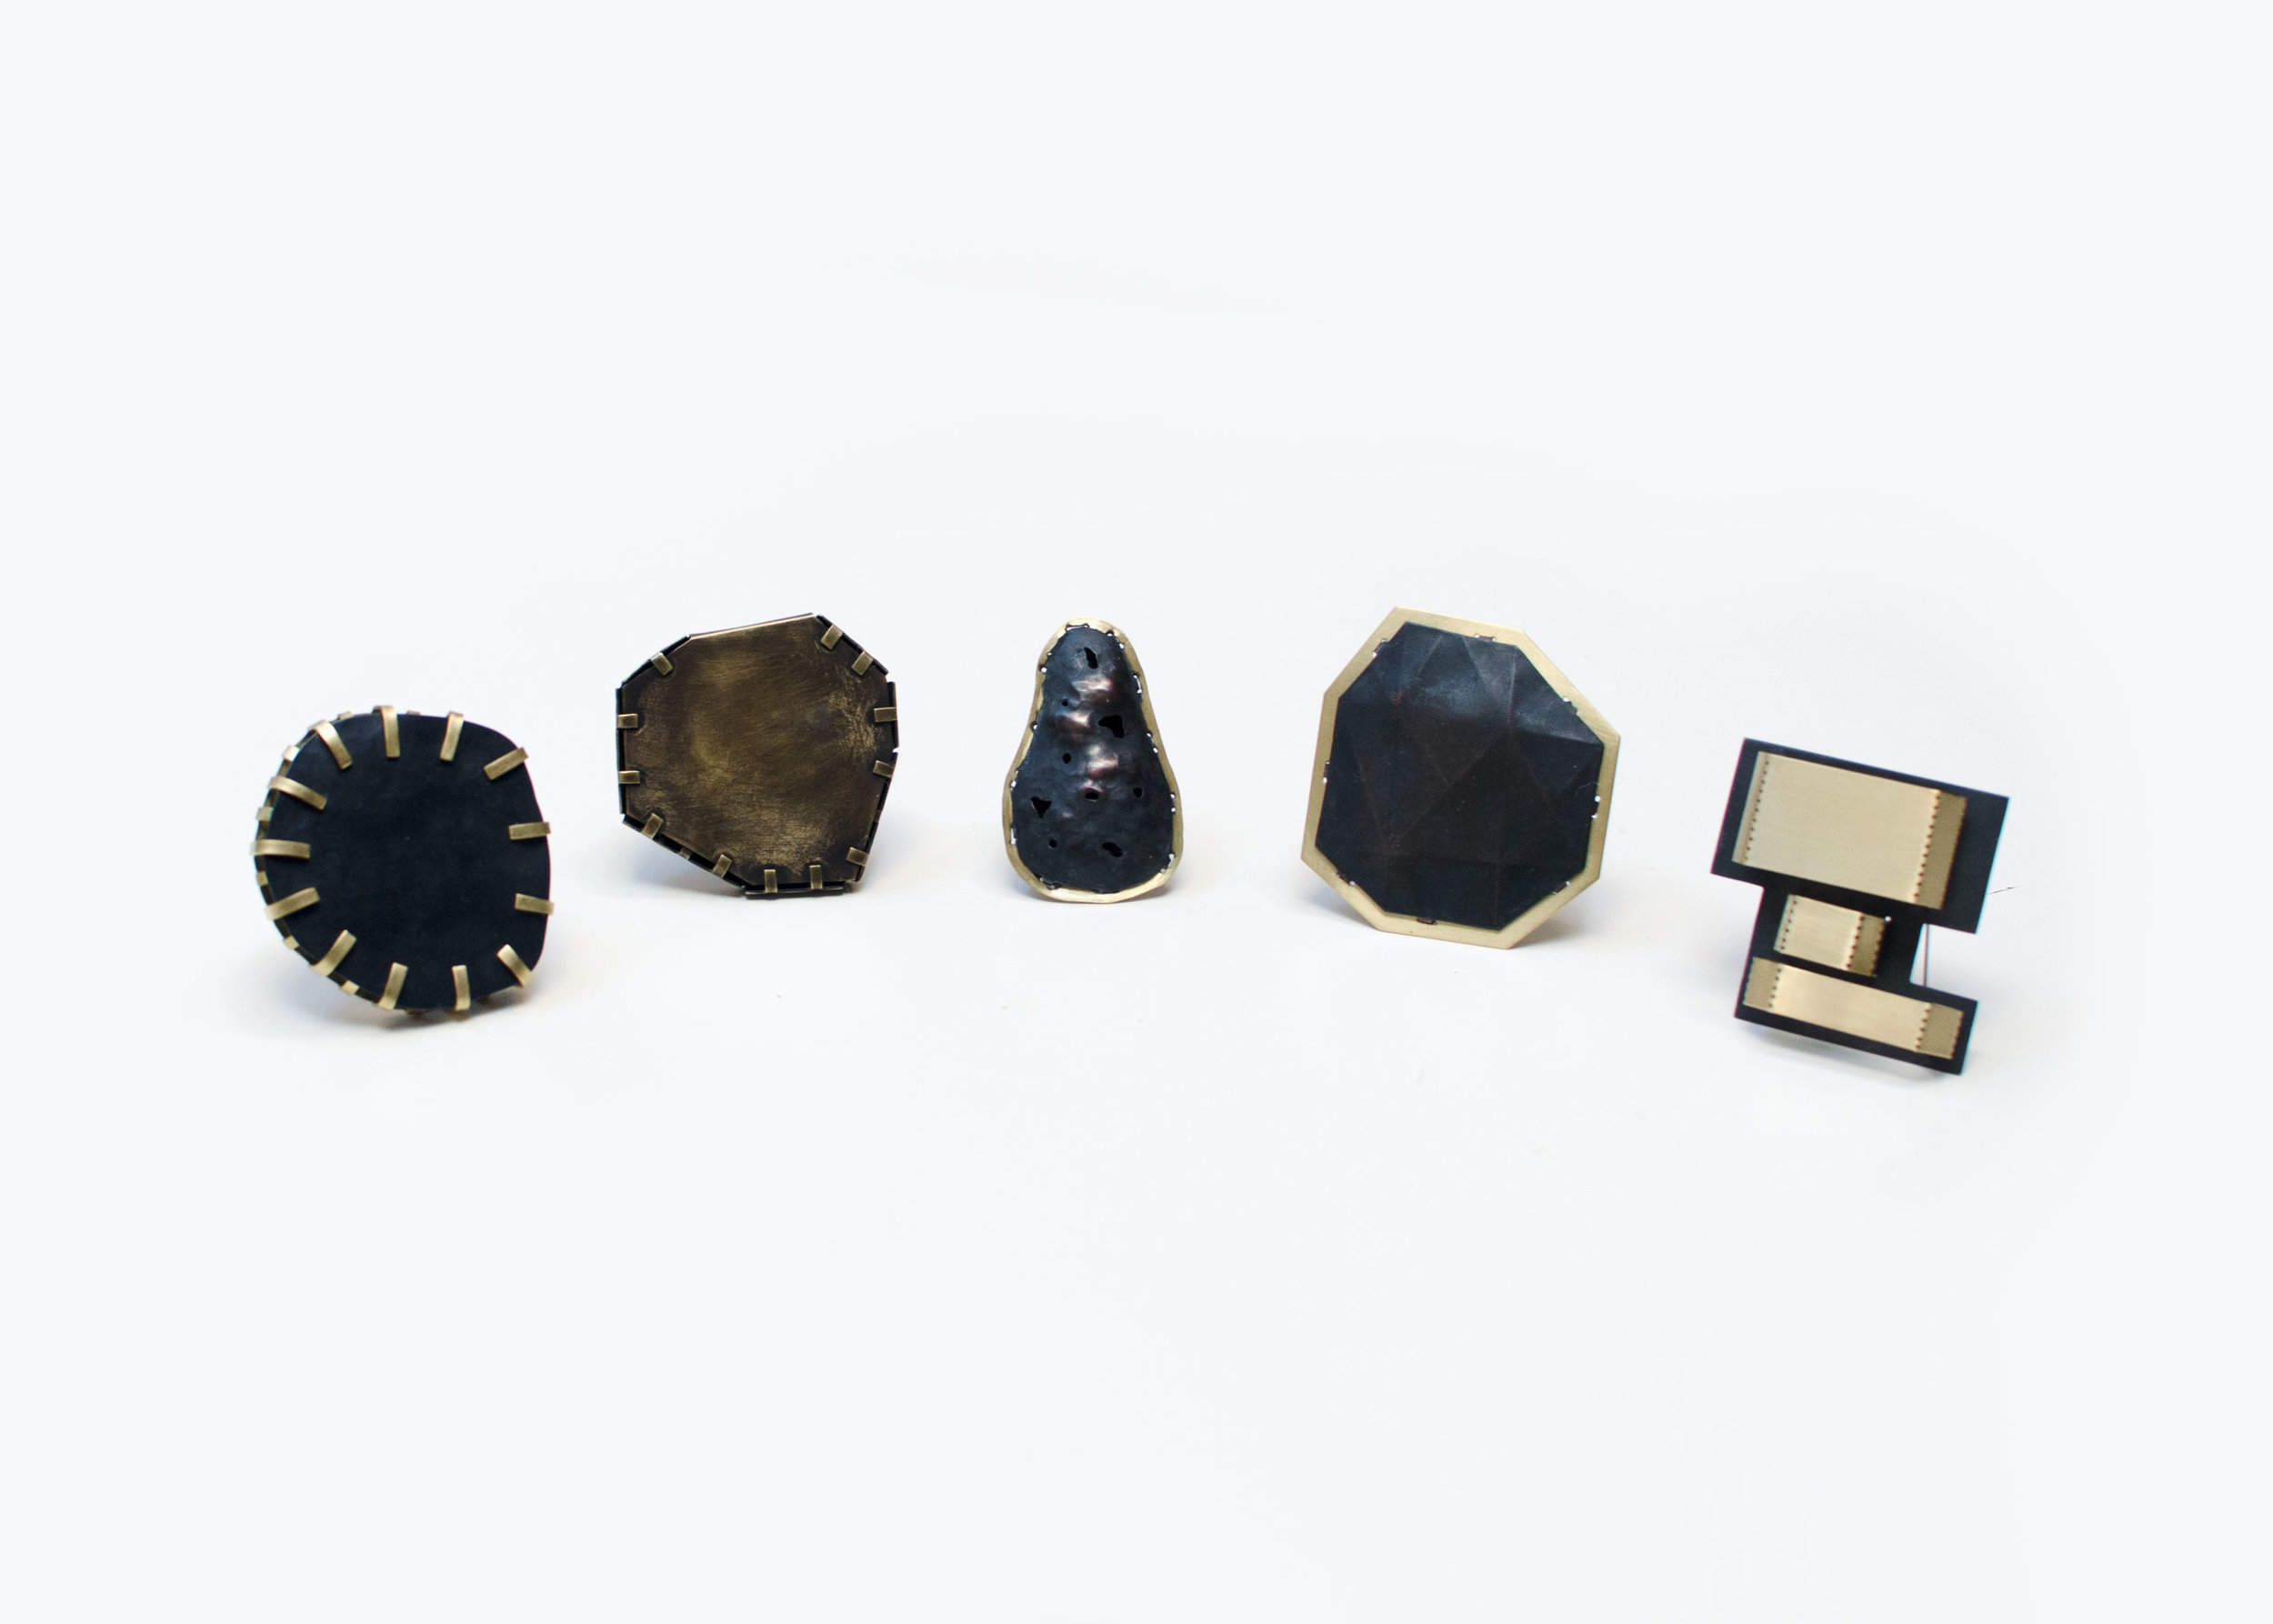 5 Folded Brooches (2016)